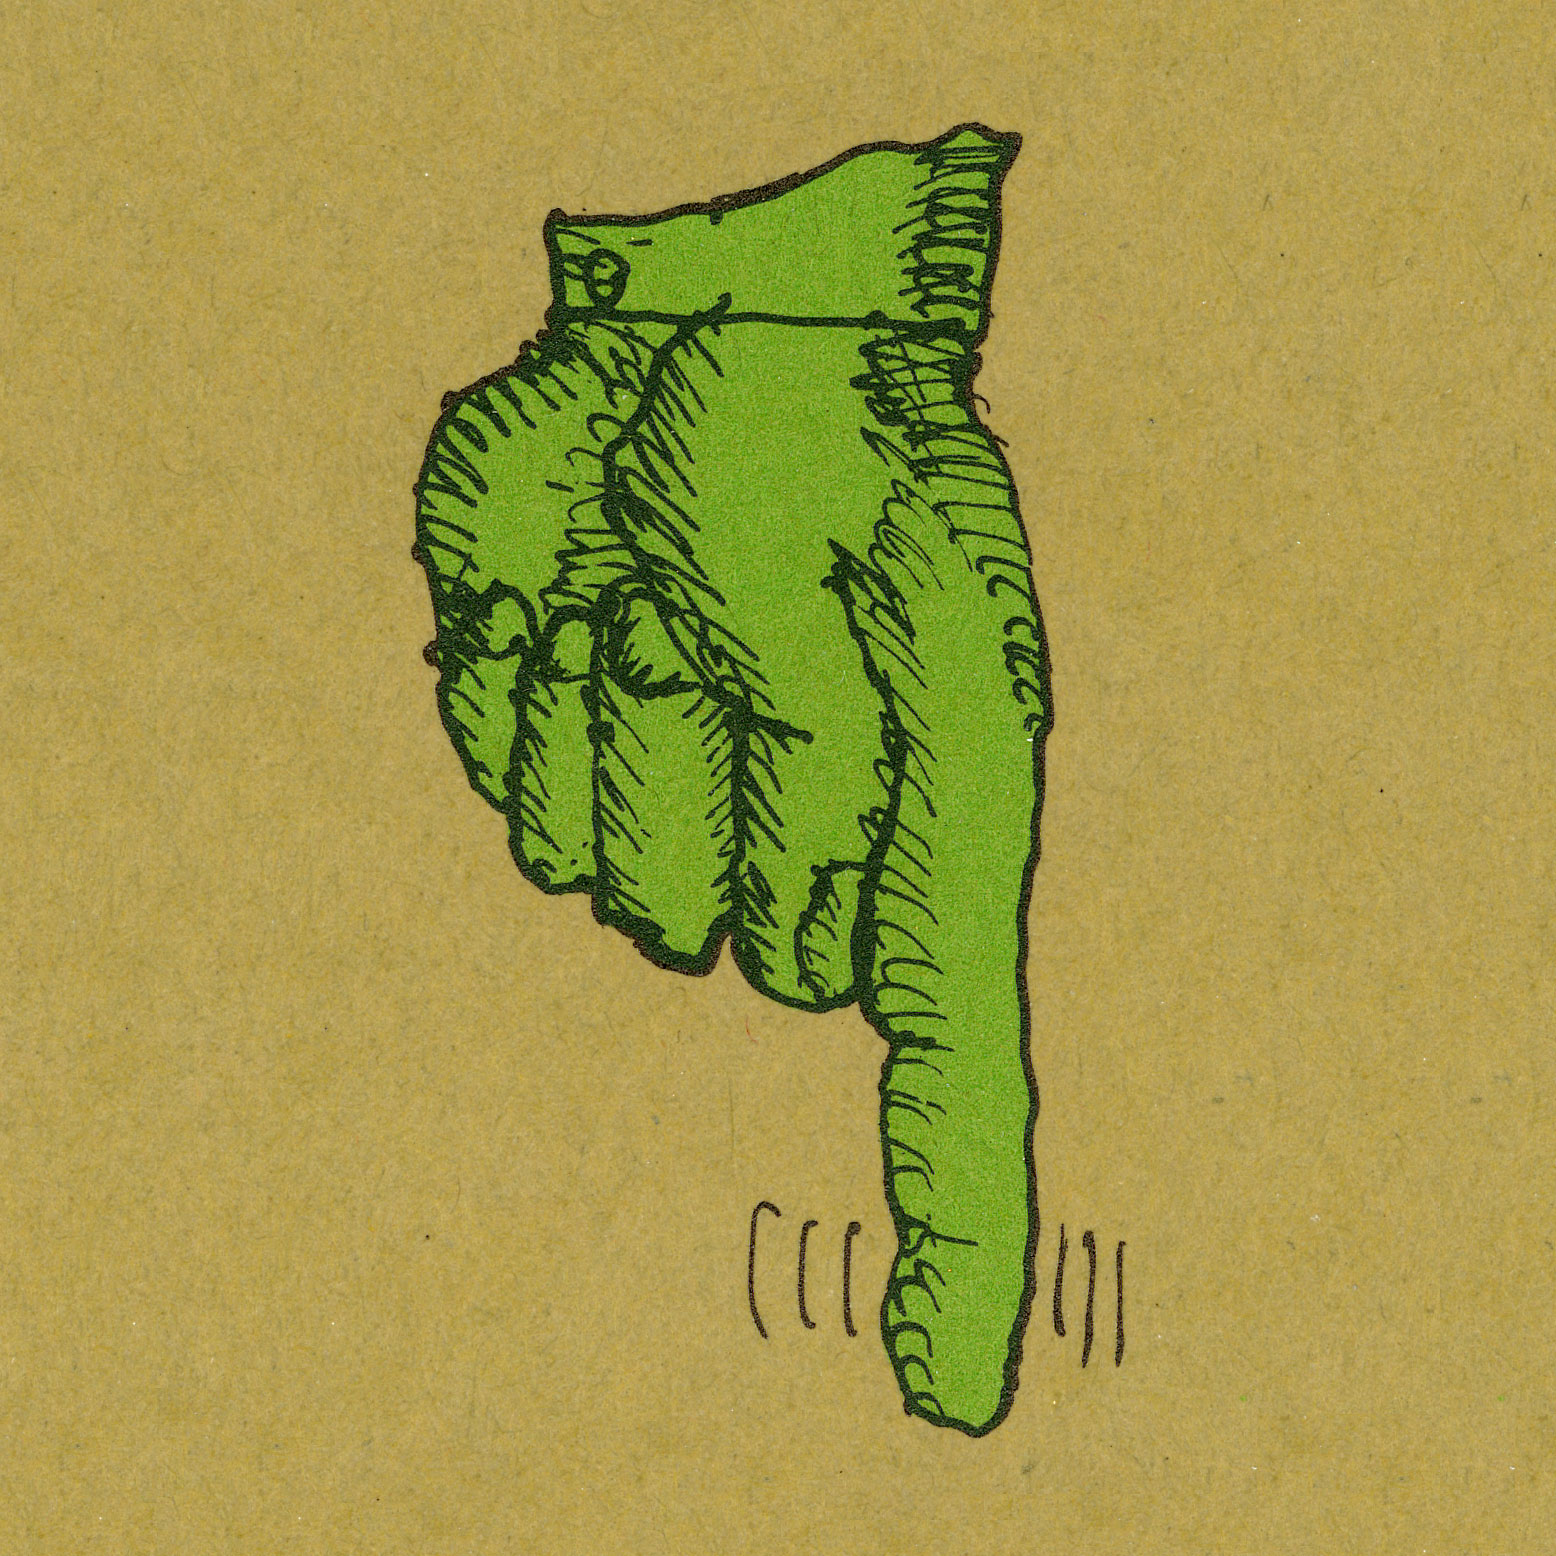 greenmanicule.jpg